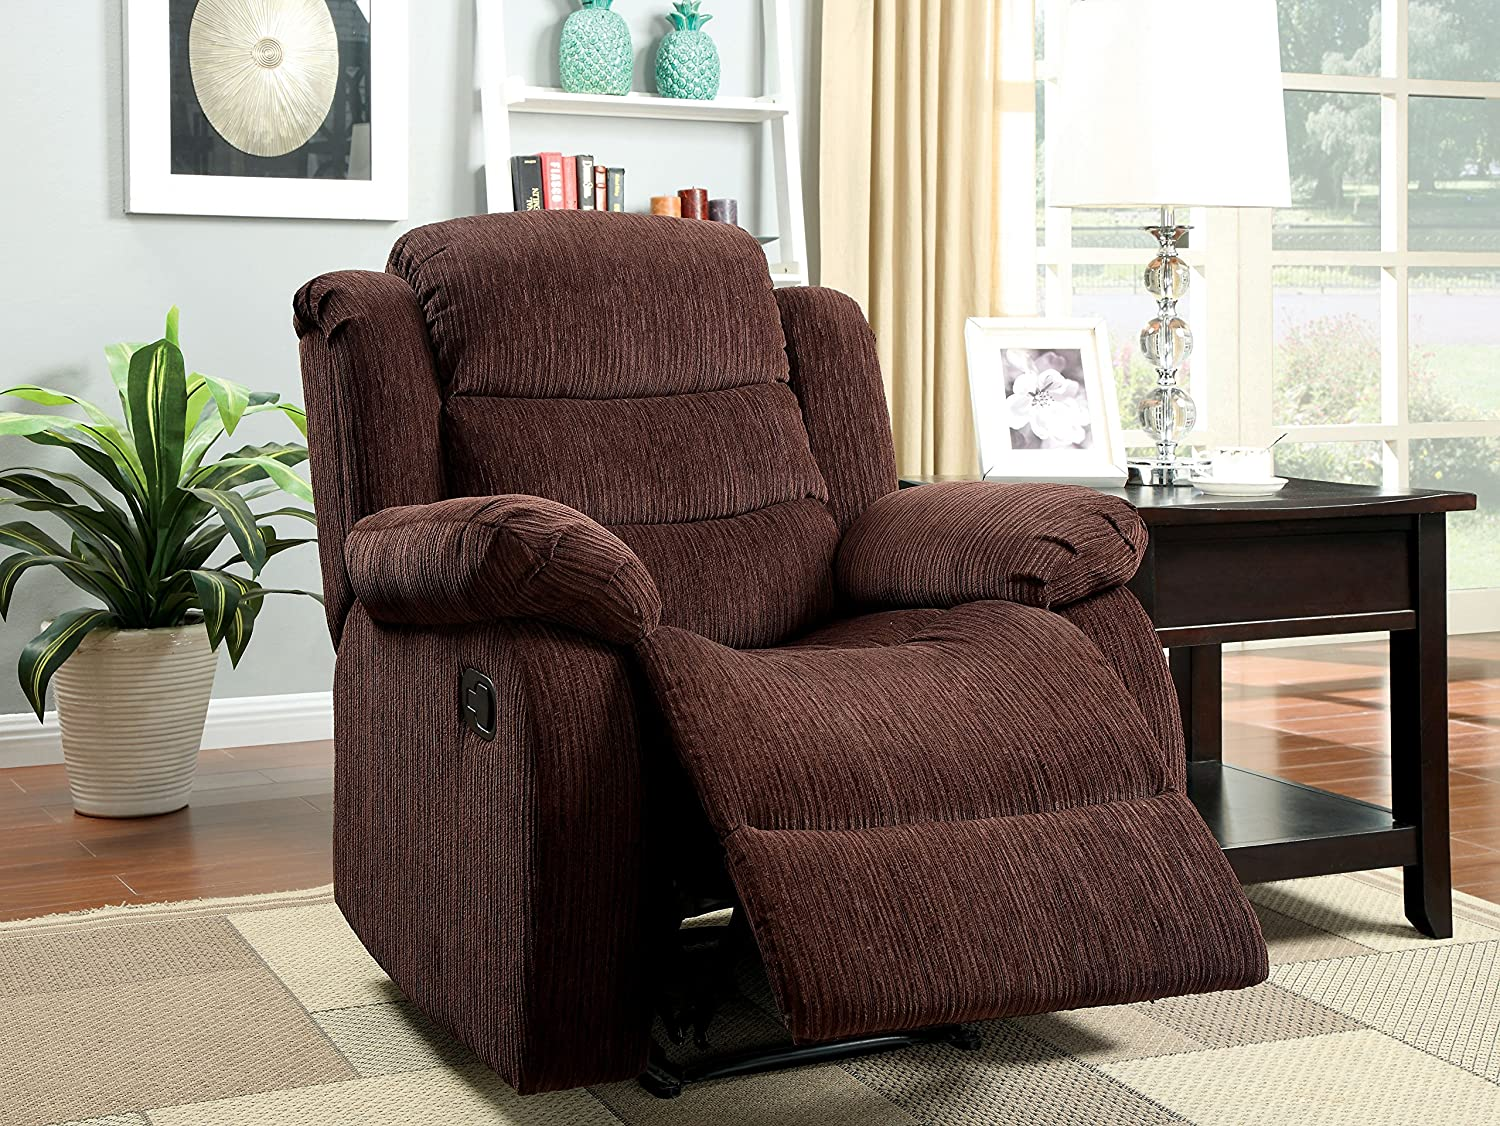 Amazon.com HOMES Inside + Out ioHOMES Blake Chenille Recliner Chair Gray Kitchen u0026 Dining & Amazon.com: HOMES: Inside + Out ioHOMES Blake Chenille Recliner ... islam-shia.org